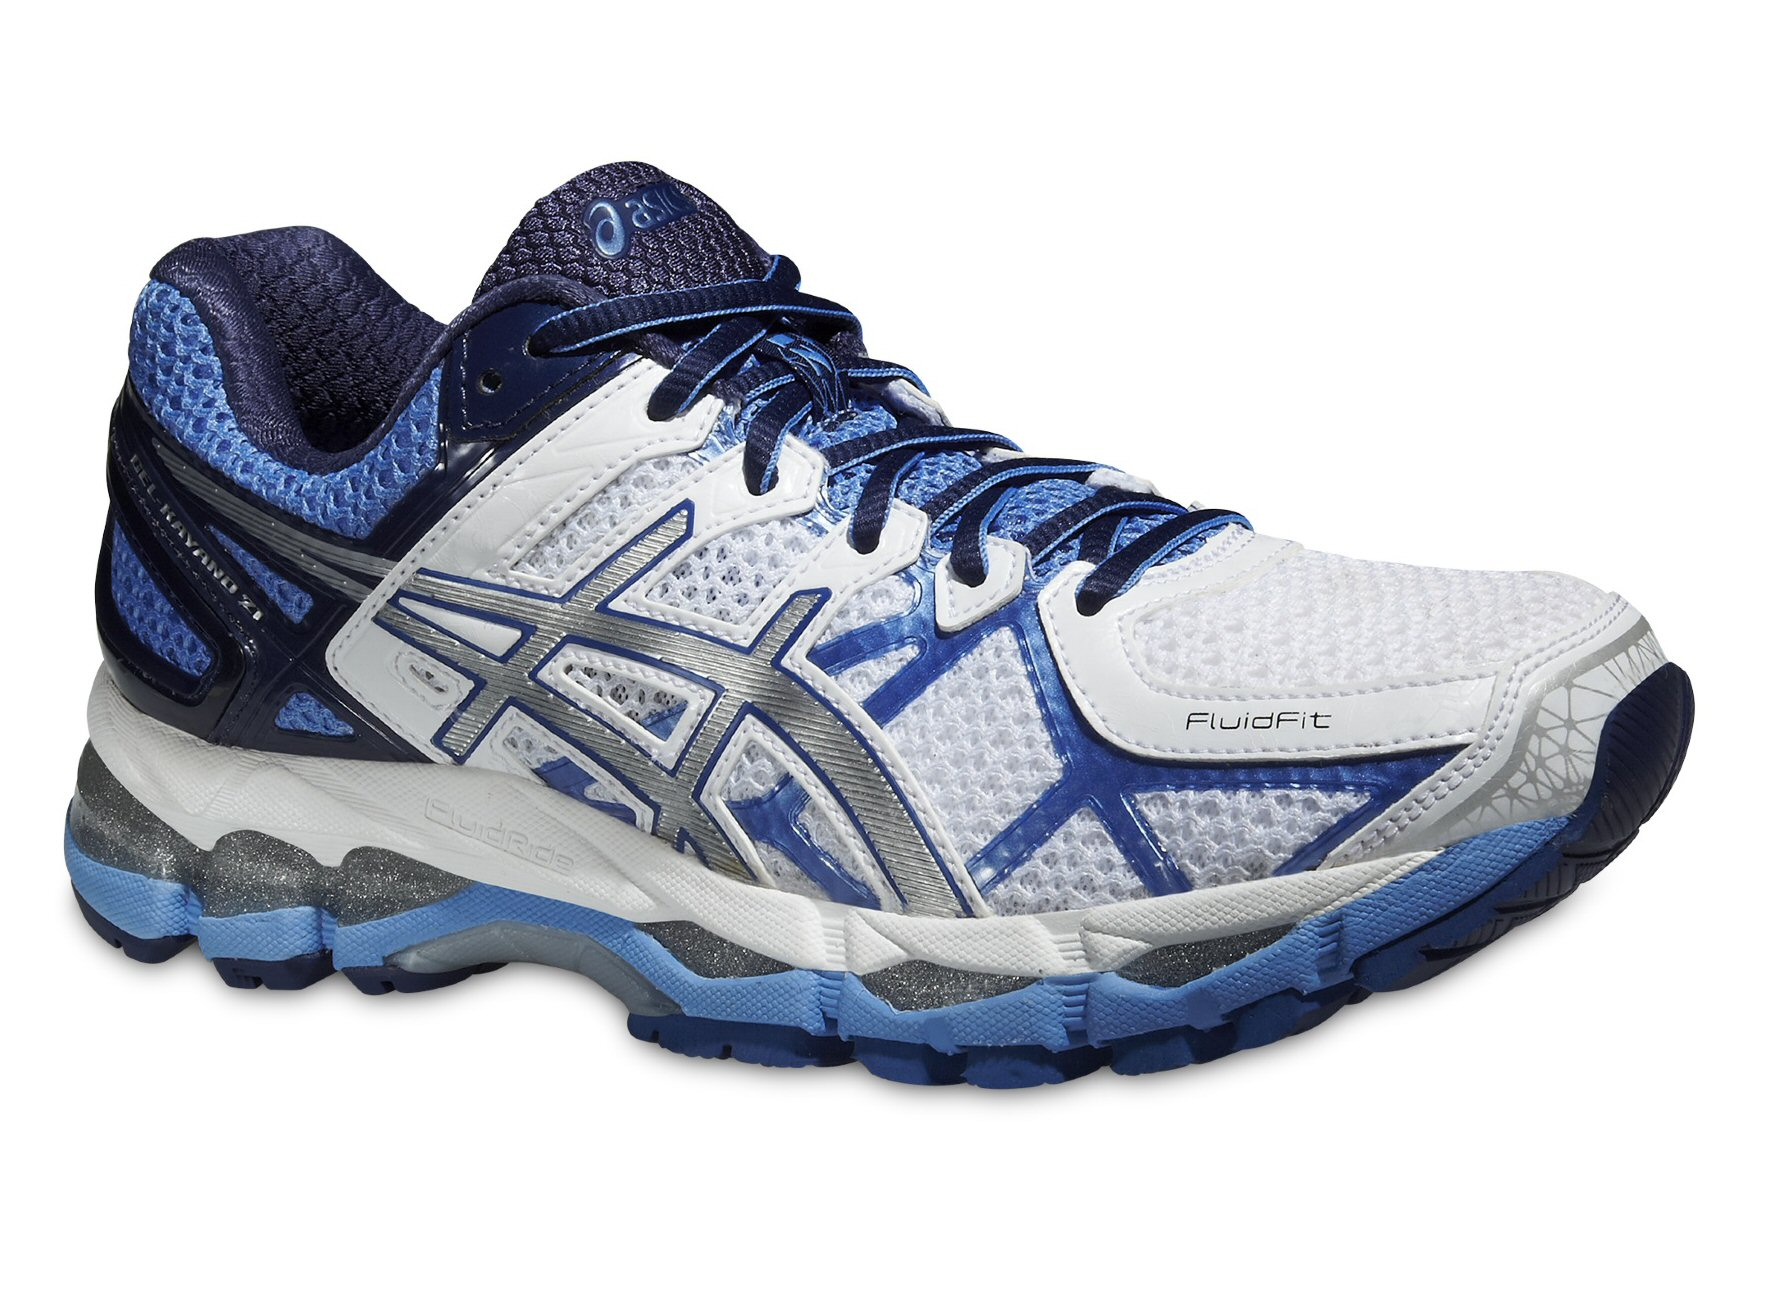 asics gel kayano 20 damen trkis folk fiddle tuition in. Black Bedroom Furniture Sets. Home Design Ideas